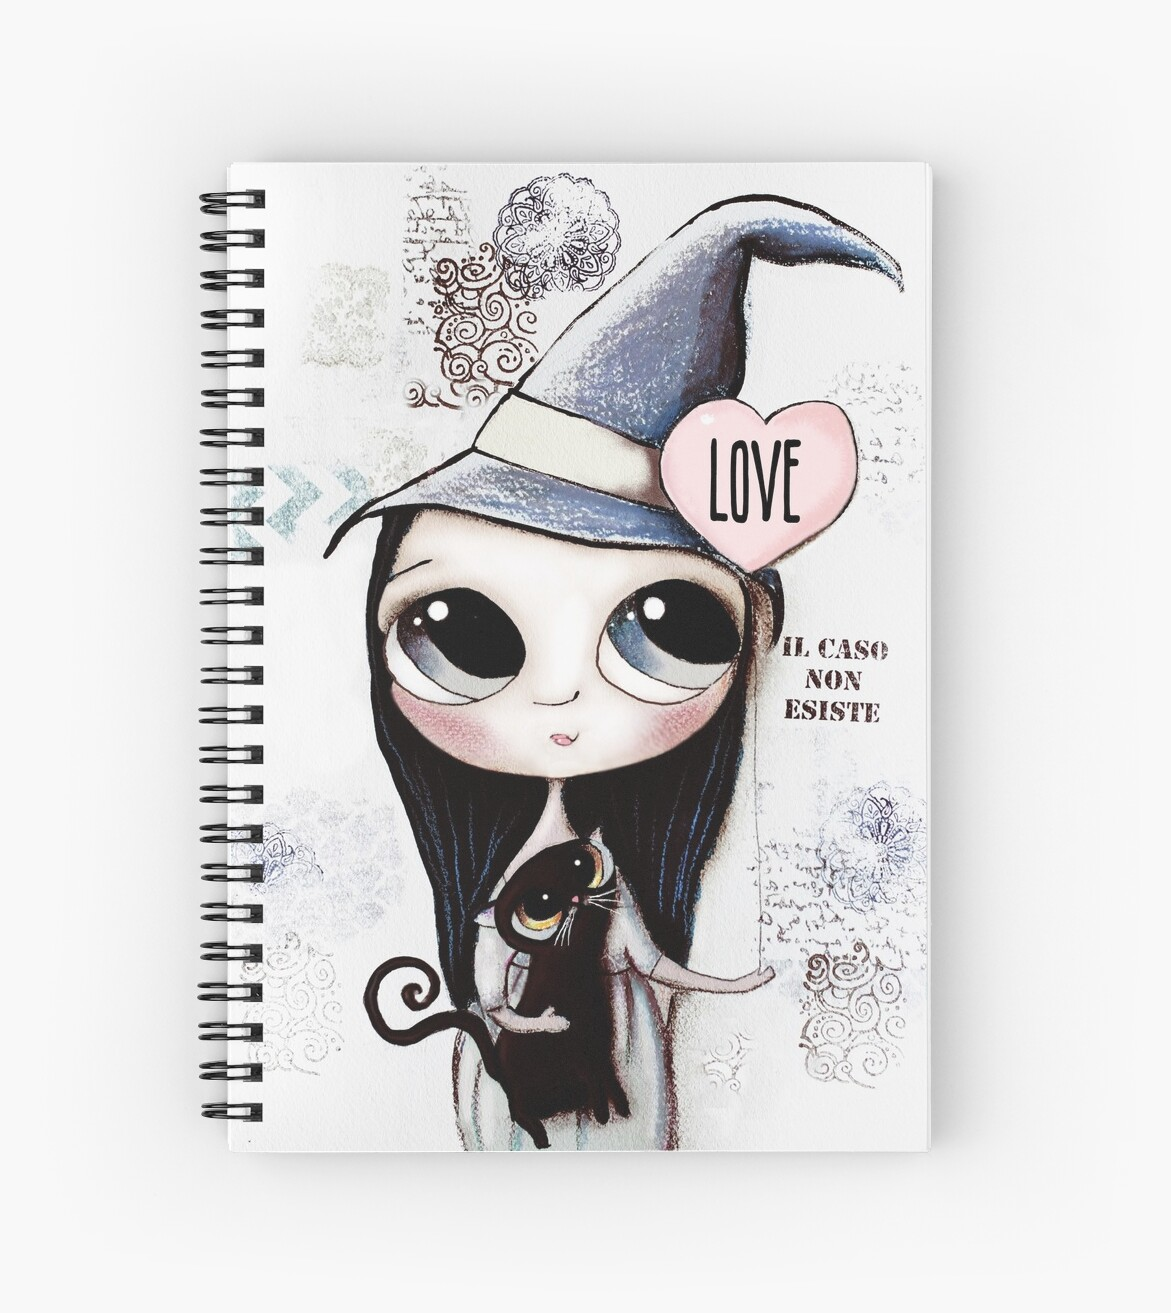 Witch with black hair and black cat and heart of Love by margherita arrighi